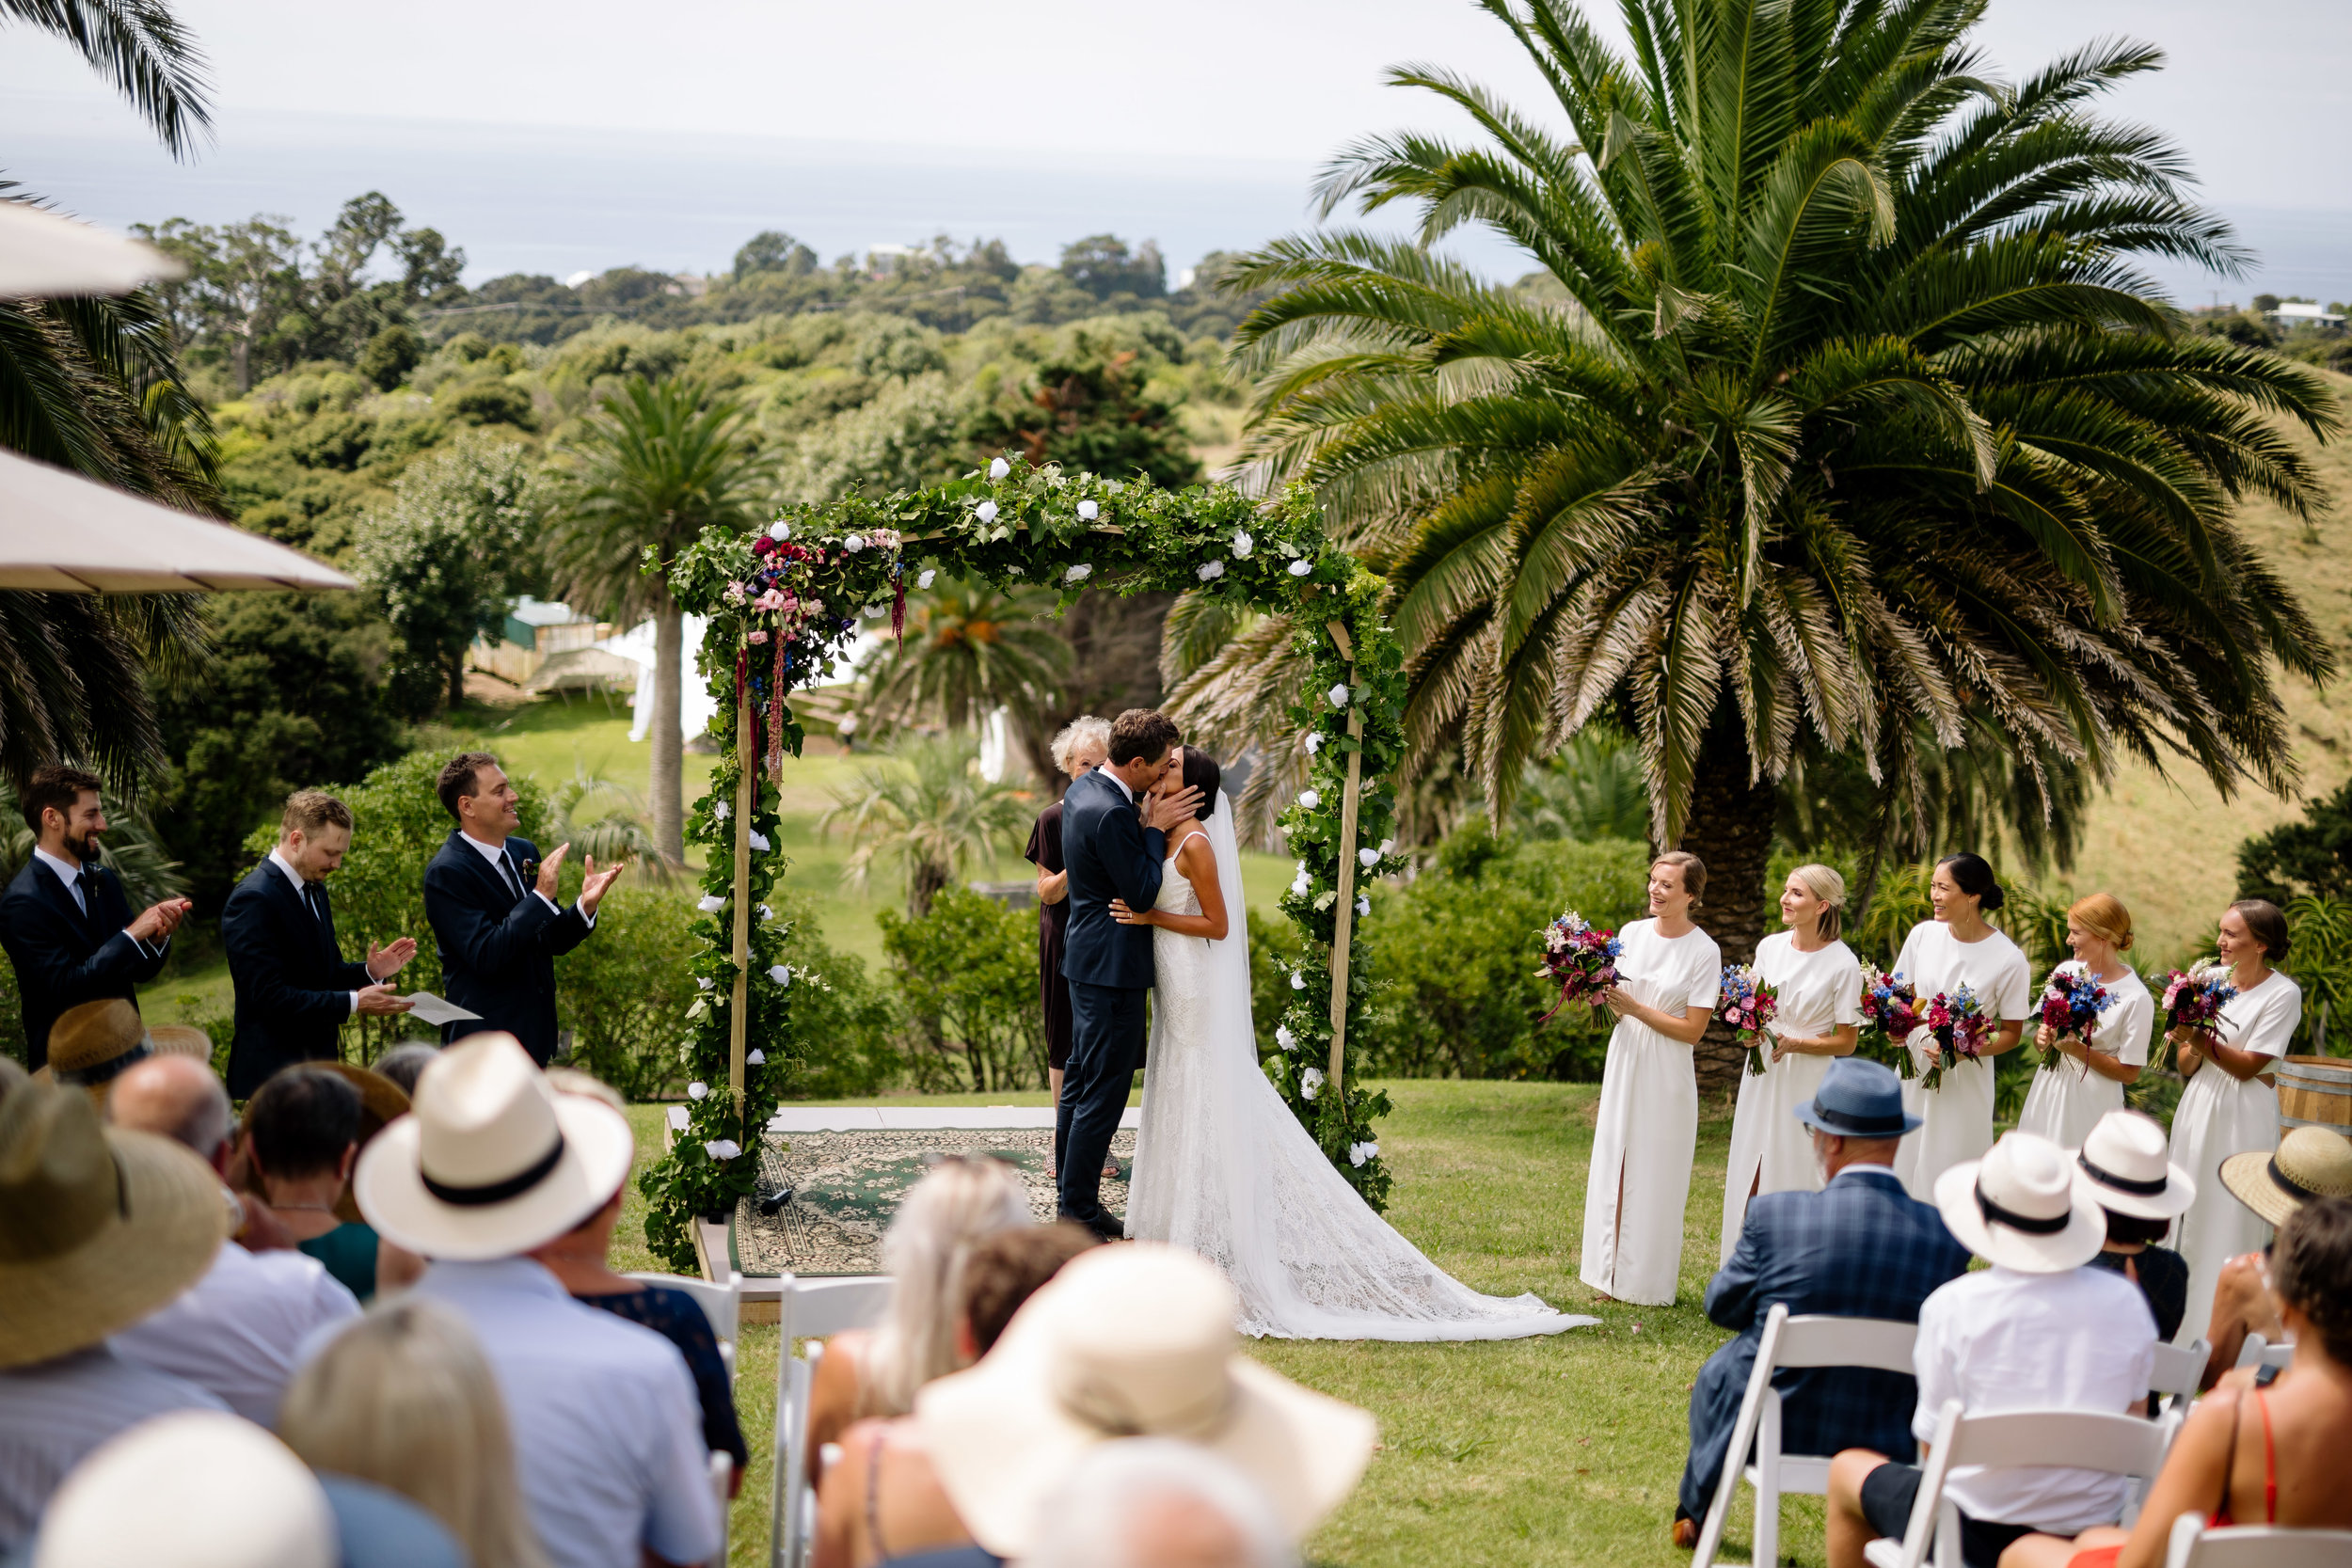 488_Alex-Tommo-wedding-the-official-photographers_AOP_0744.jpg